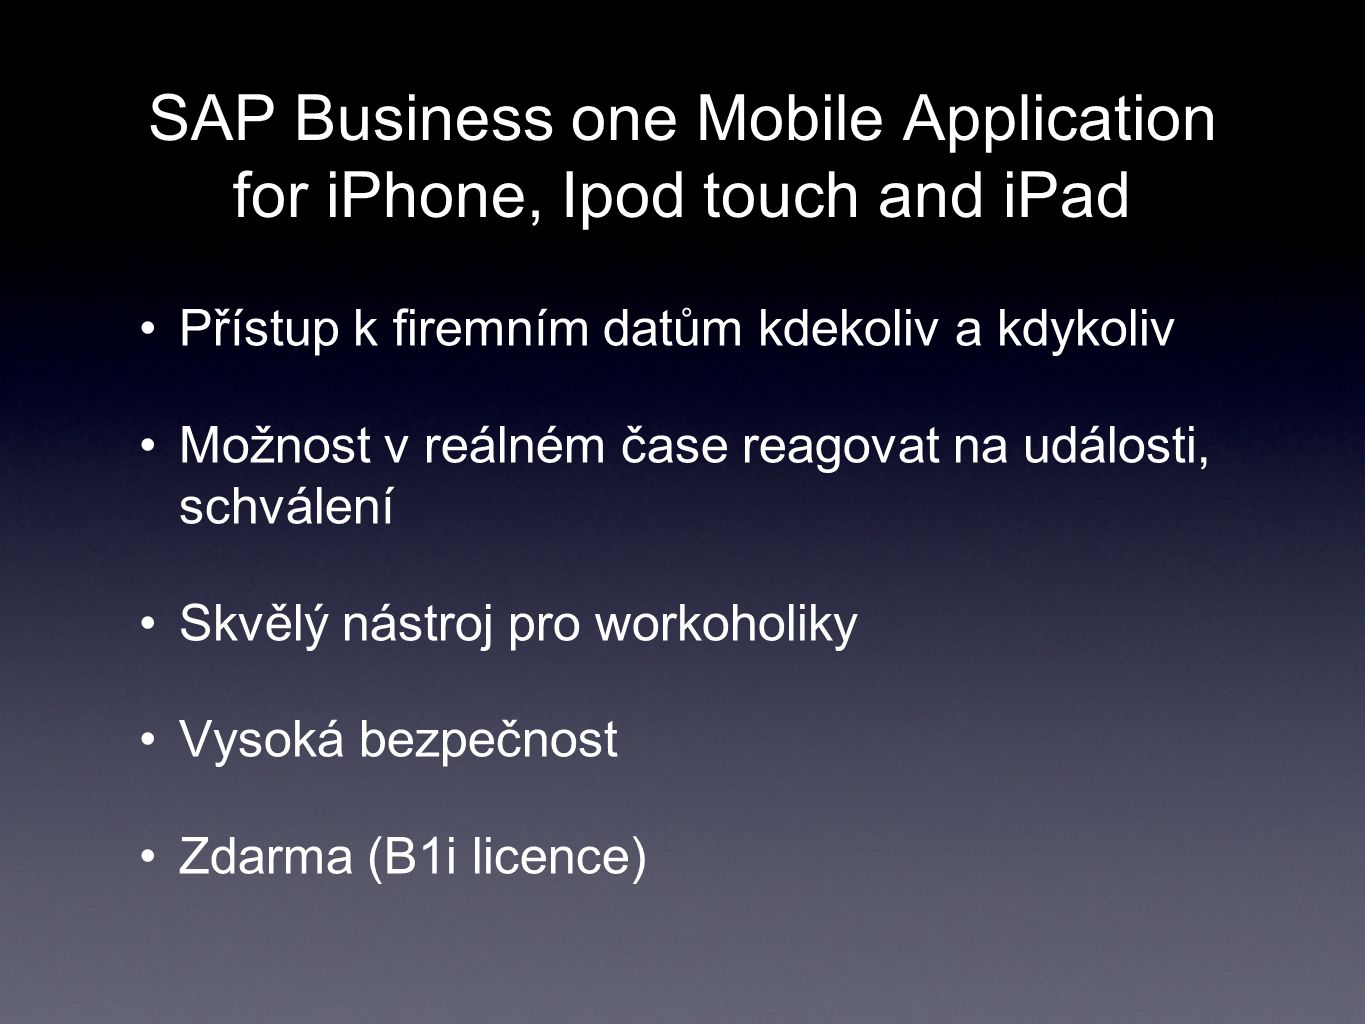 SAP Business one Mobile Application for iPhone, Ipod touch and iPad